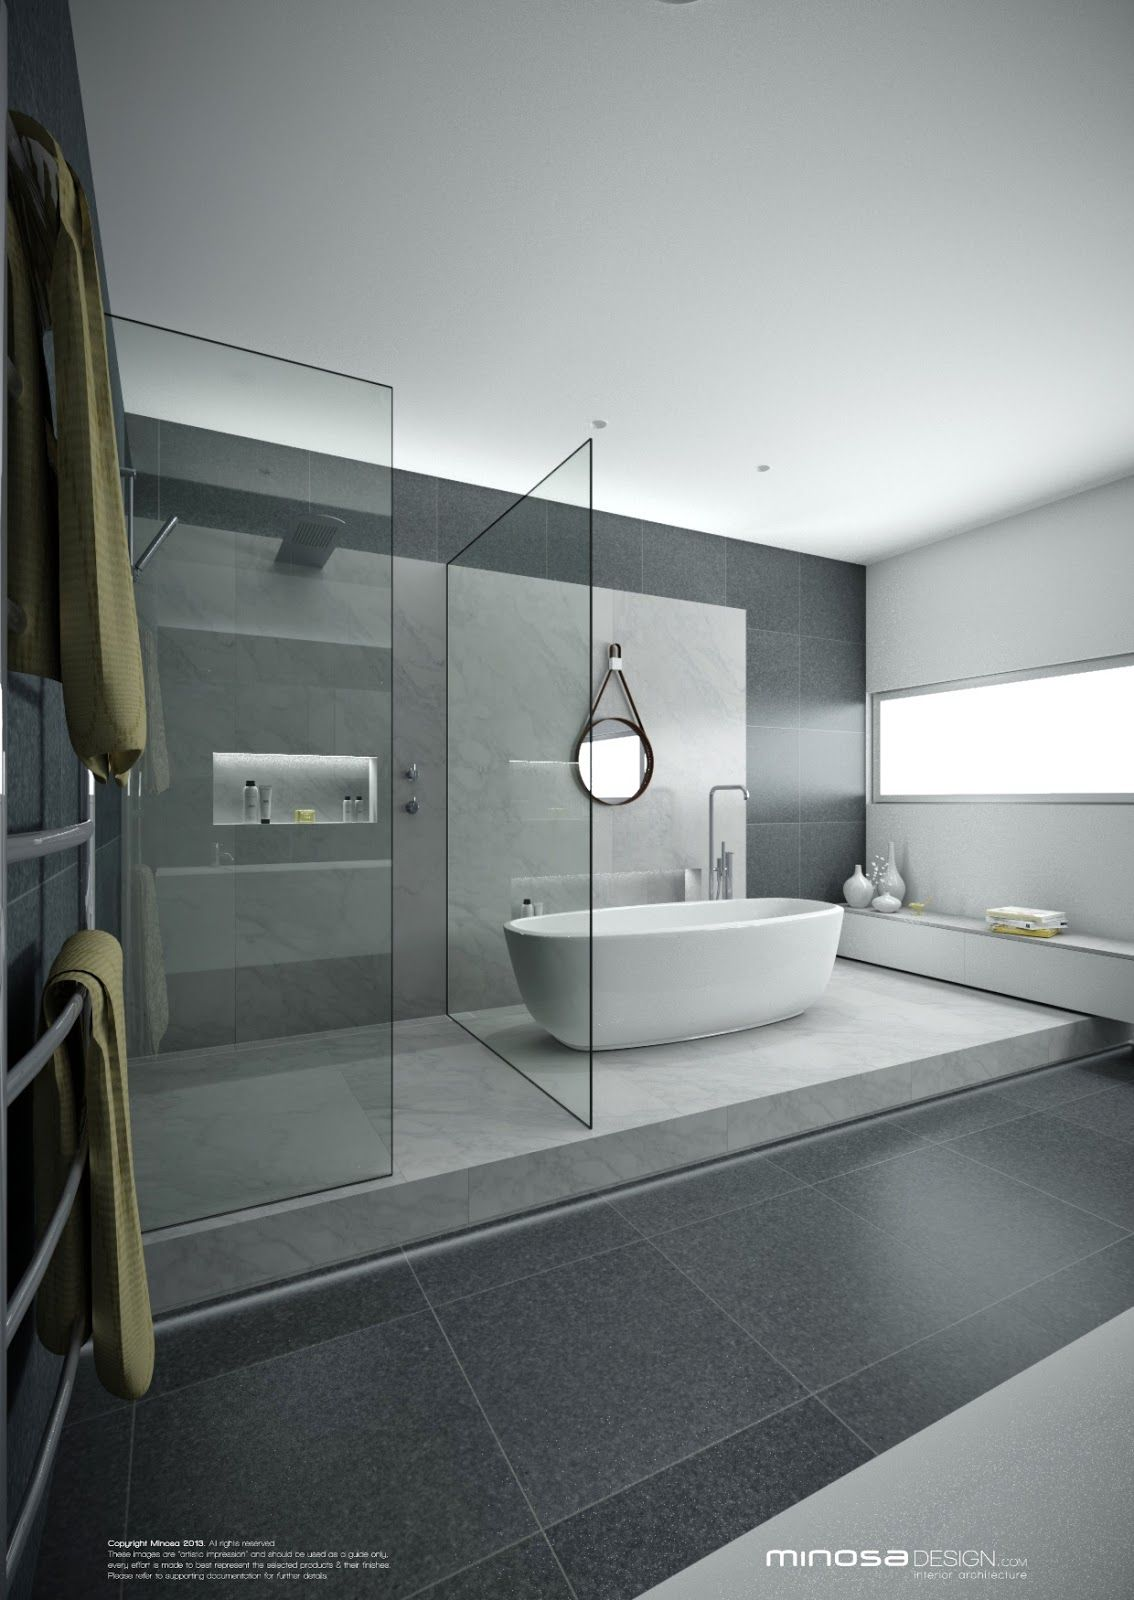 Minosa Design A real showstopper! Modern Bathroom